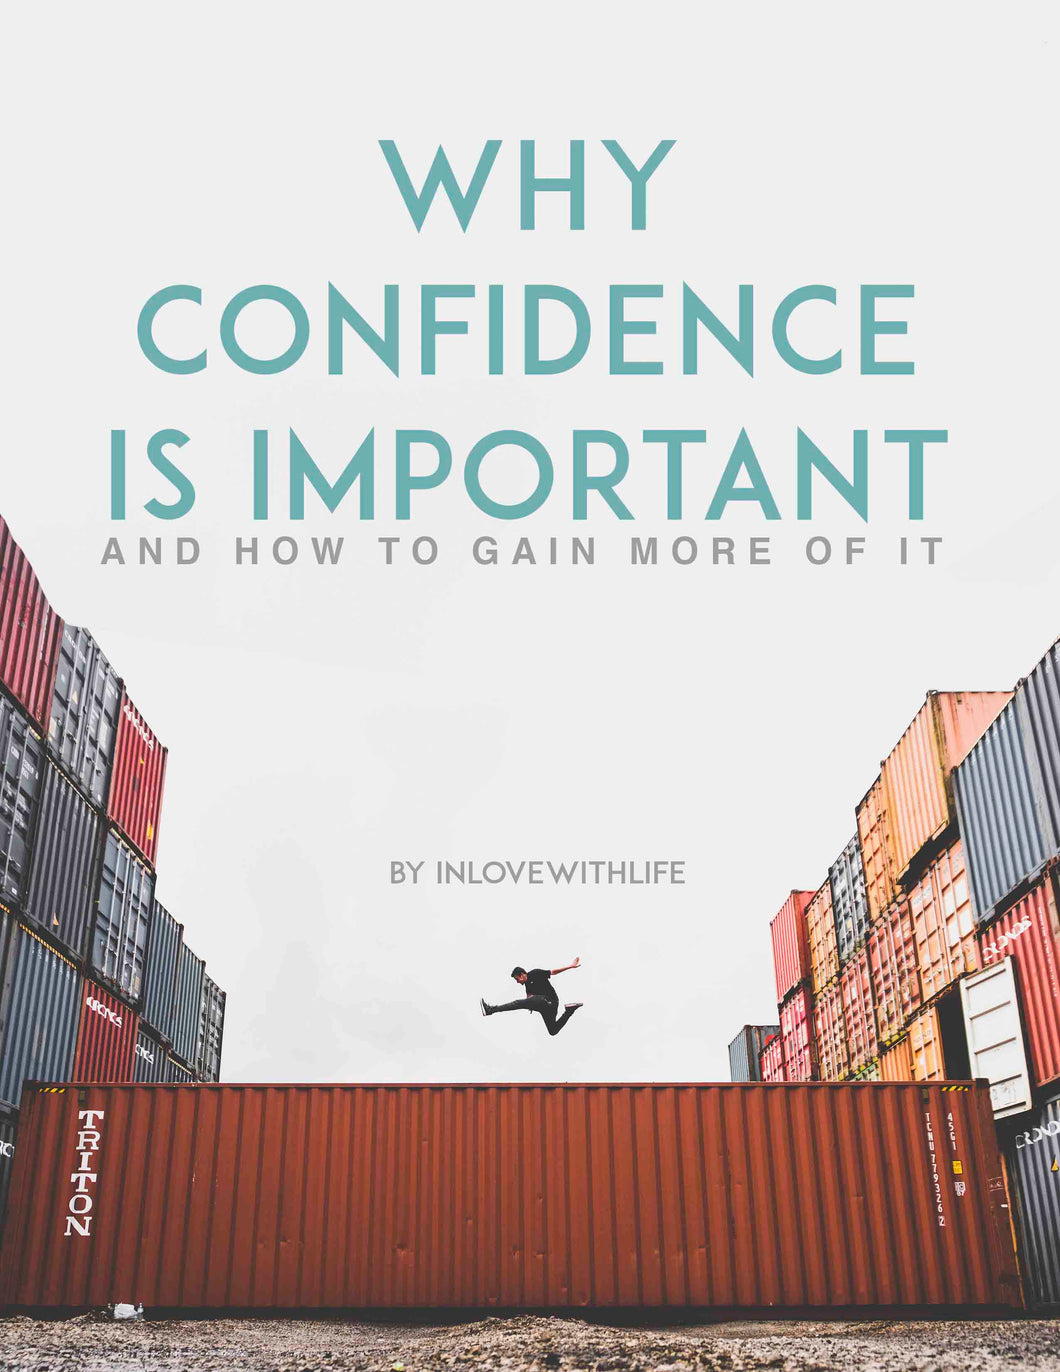 Why confidence is important and how to gain more of it